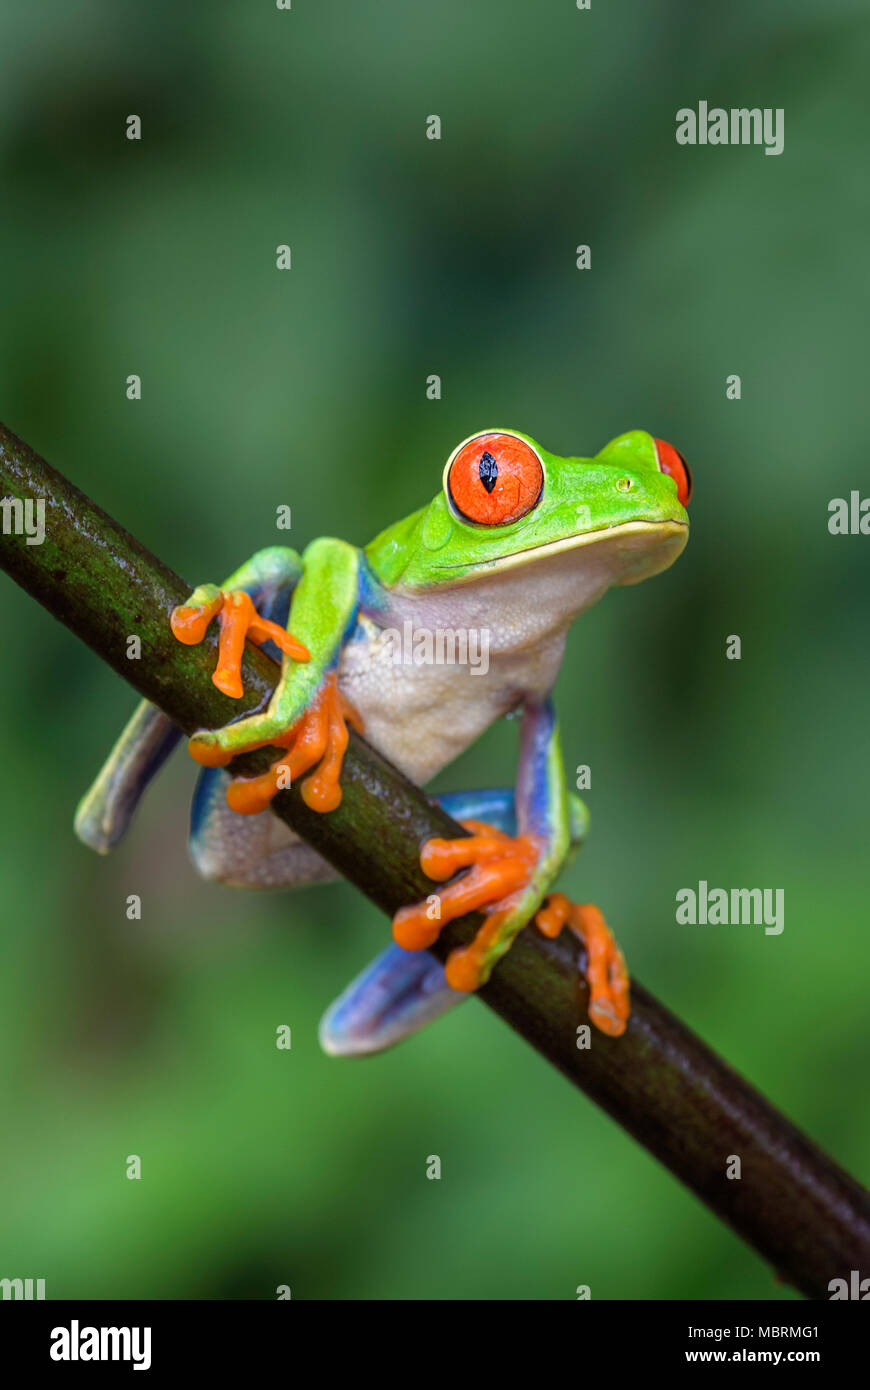 Red-eyed Tree Frog - Agalychnis callidryas, beautiful colorful from iconic to Central America forests, Costa Rica. Stock Photo